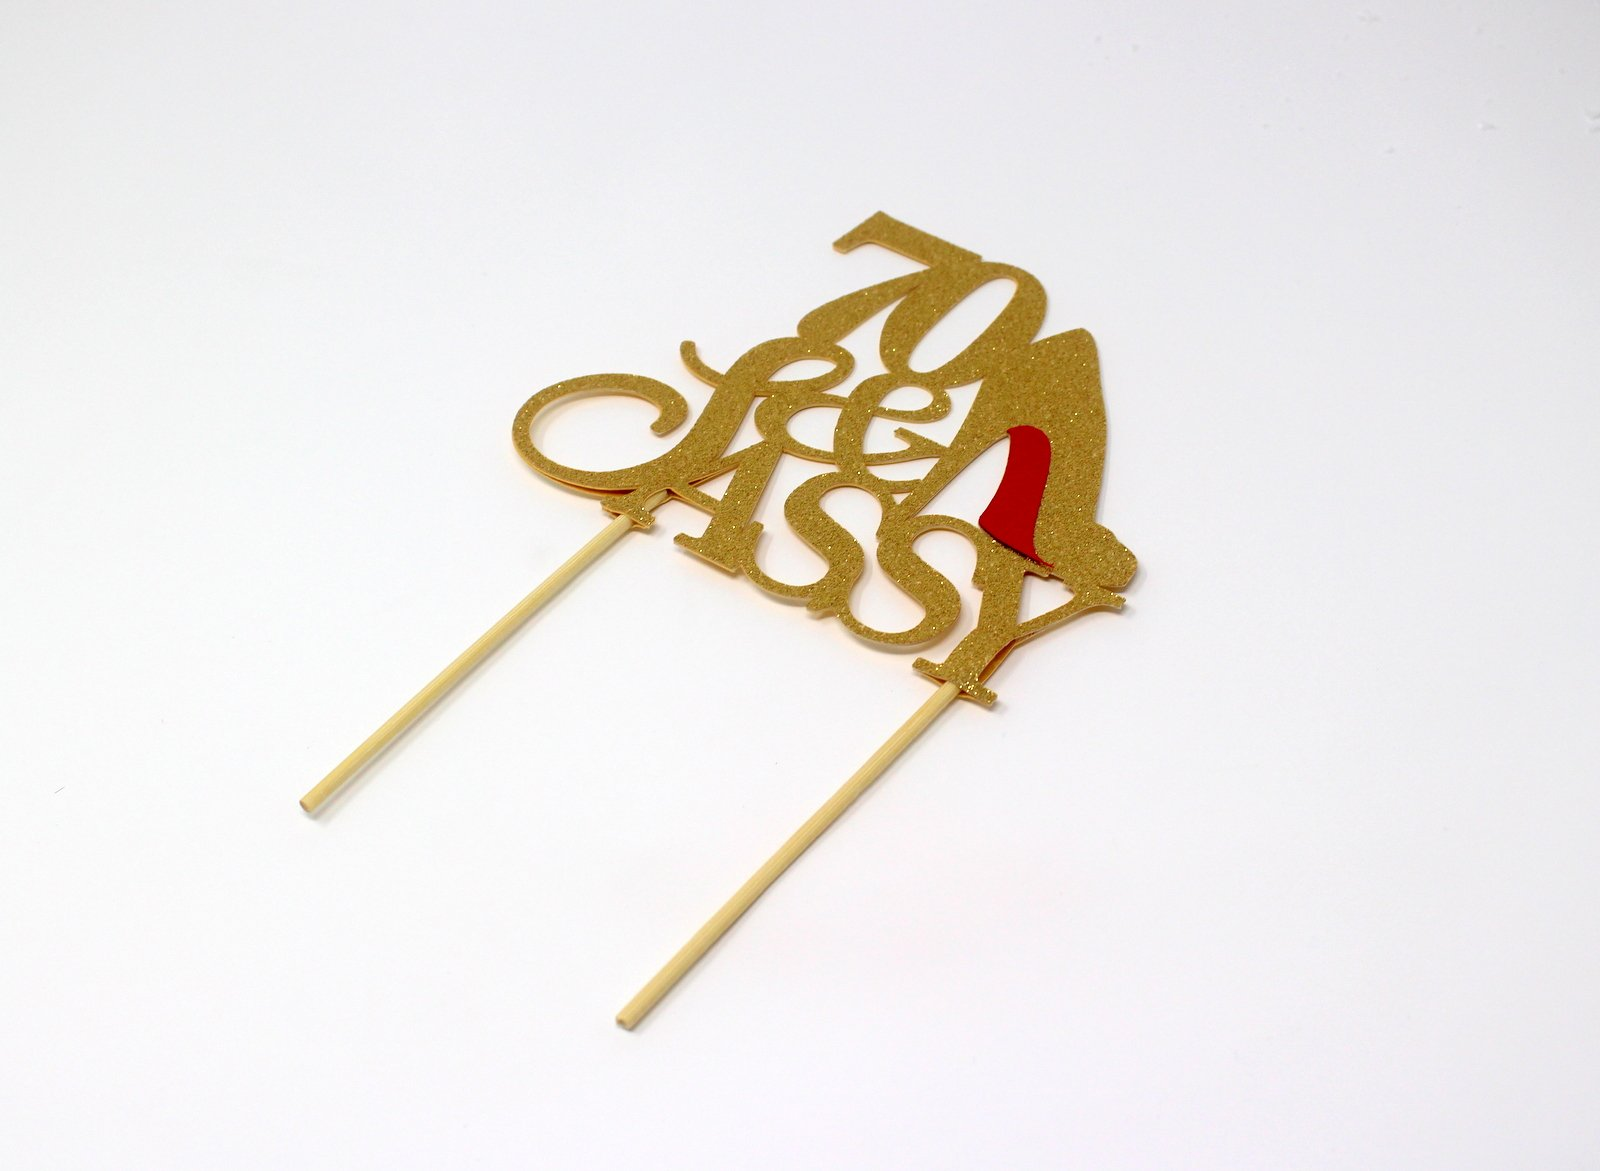 All About Details CAT70SAGOL 70 & Sassy Cake Topper (Gold), 6in wide and 5in tall with 2-pcs of 4in wood skewers by All About Details (Image #2)